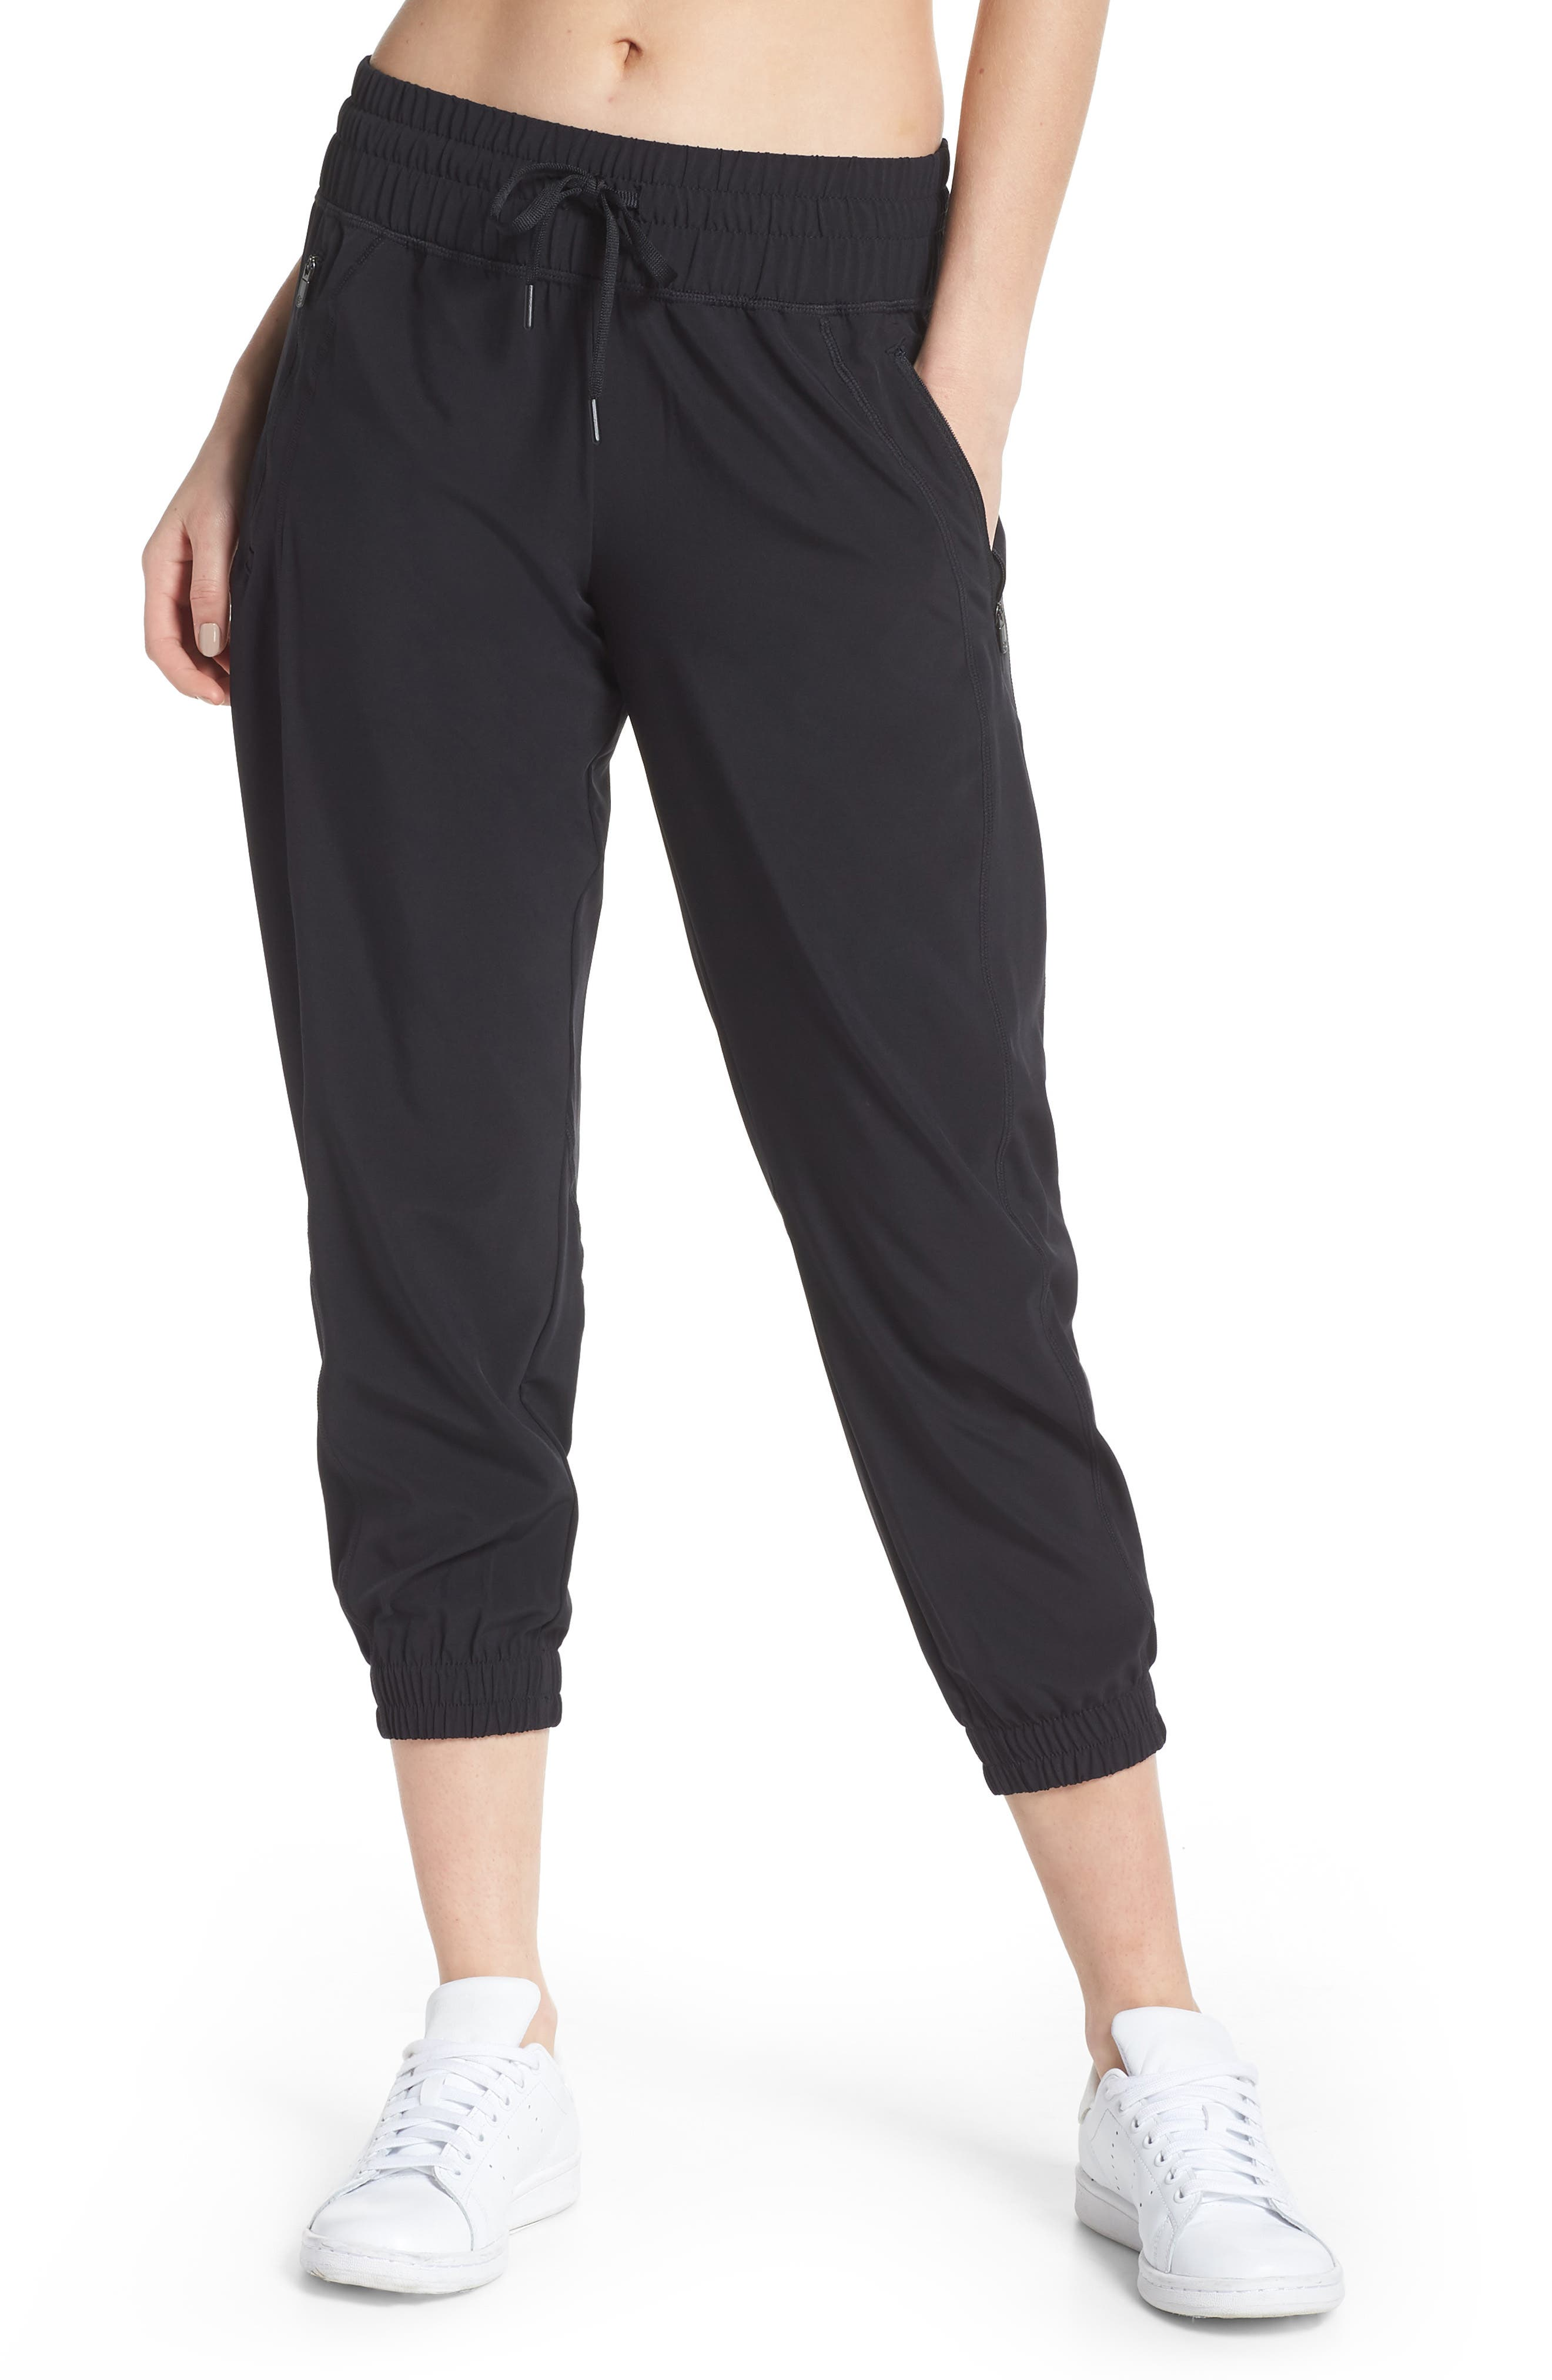 Out & About 2 Crop Pants by Zella